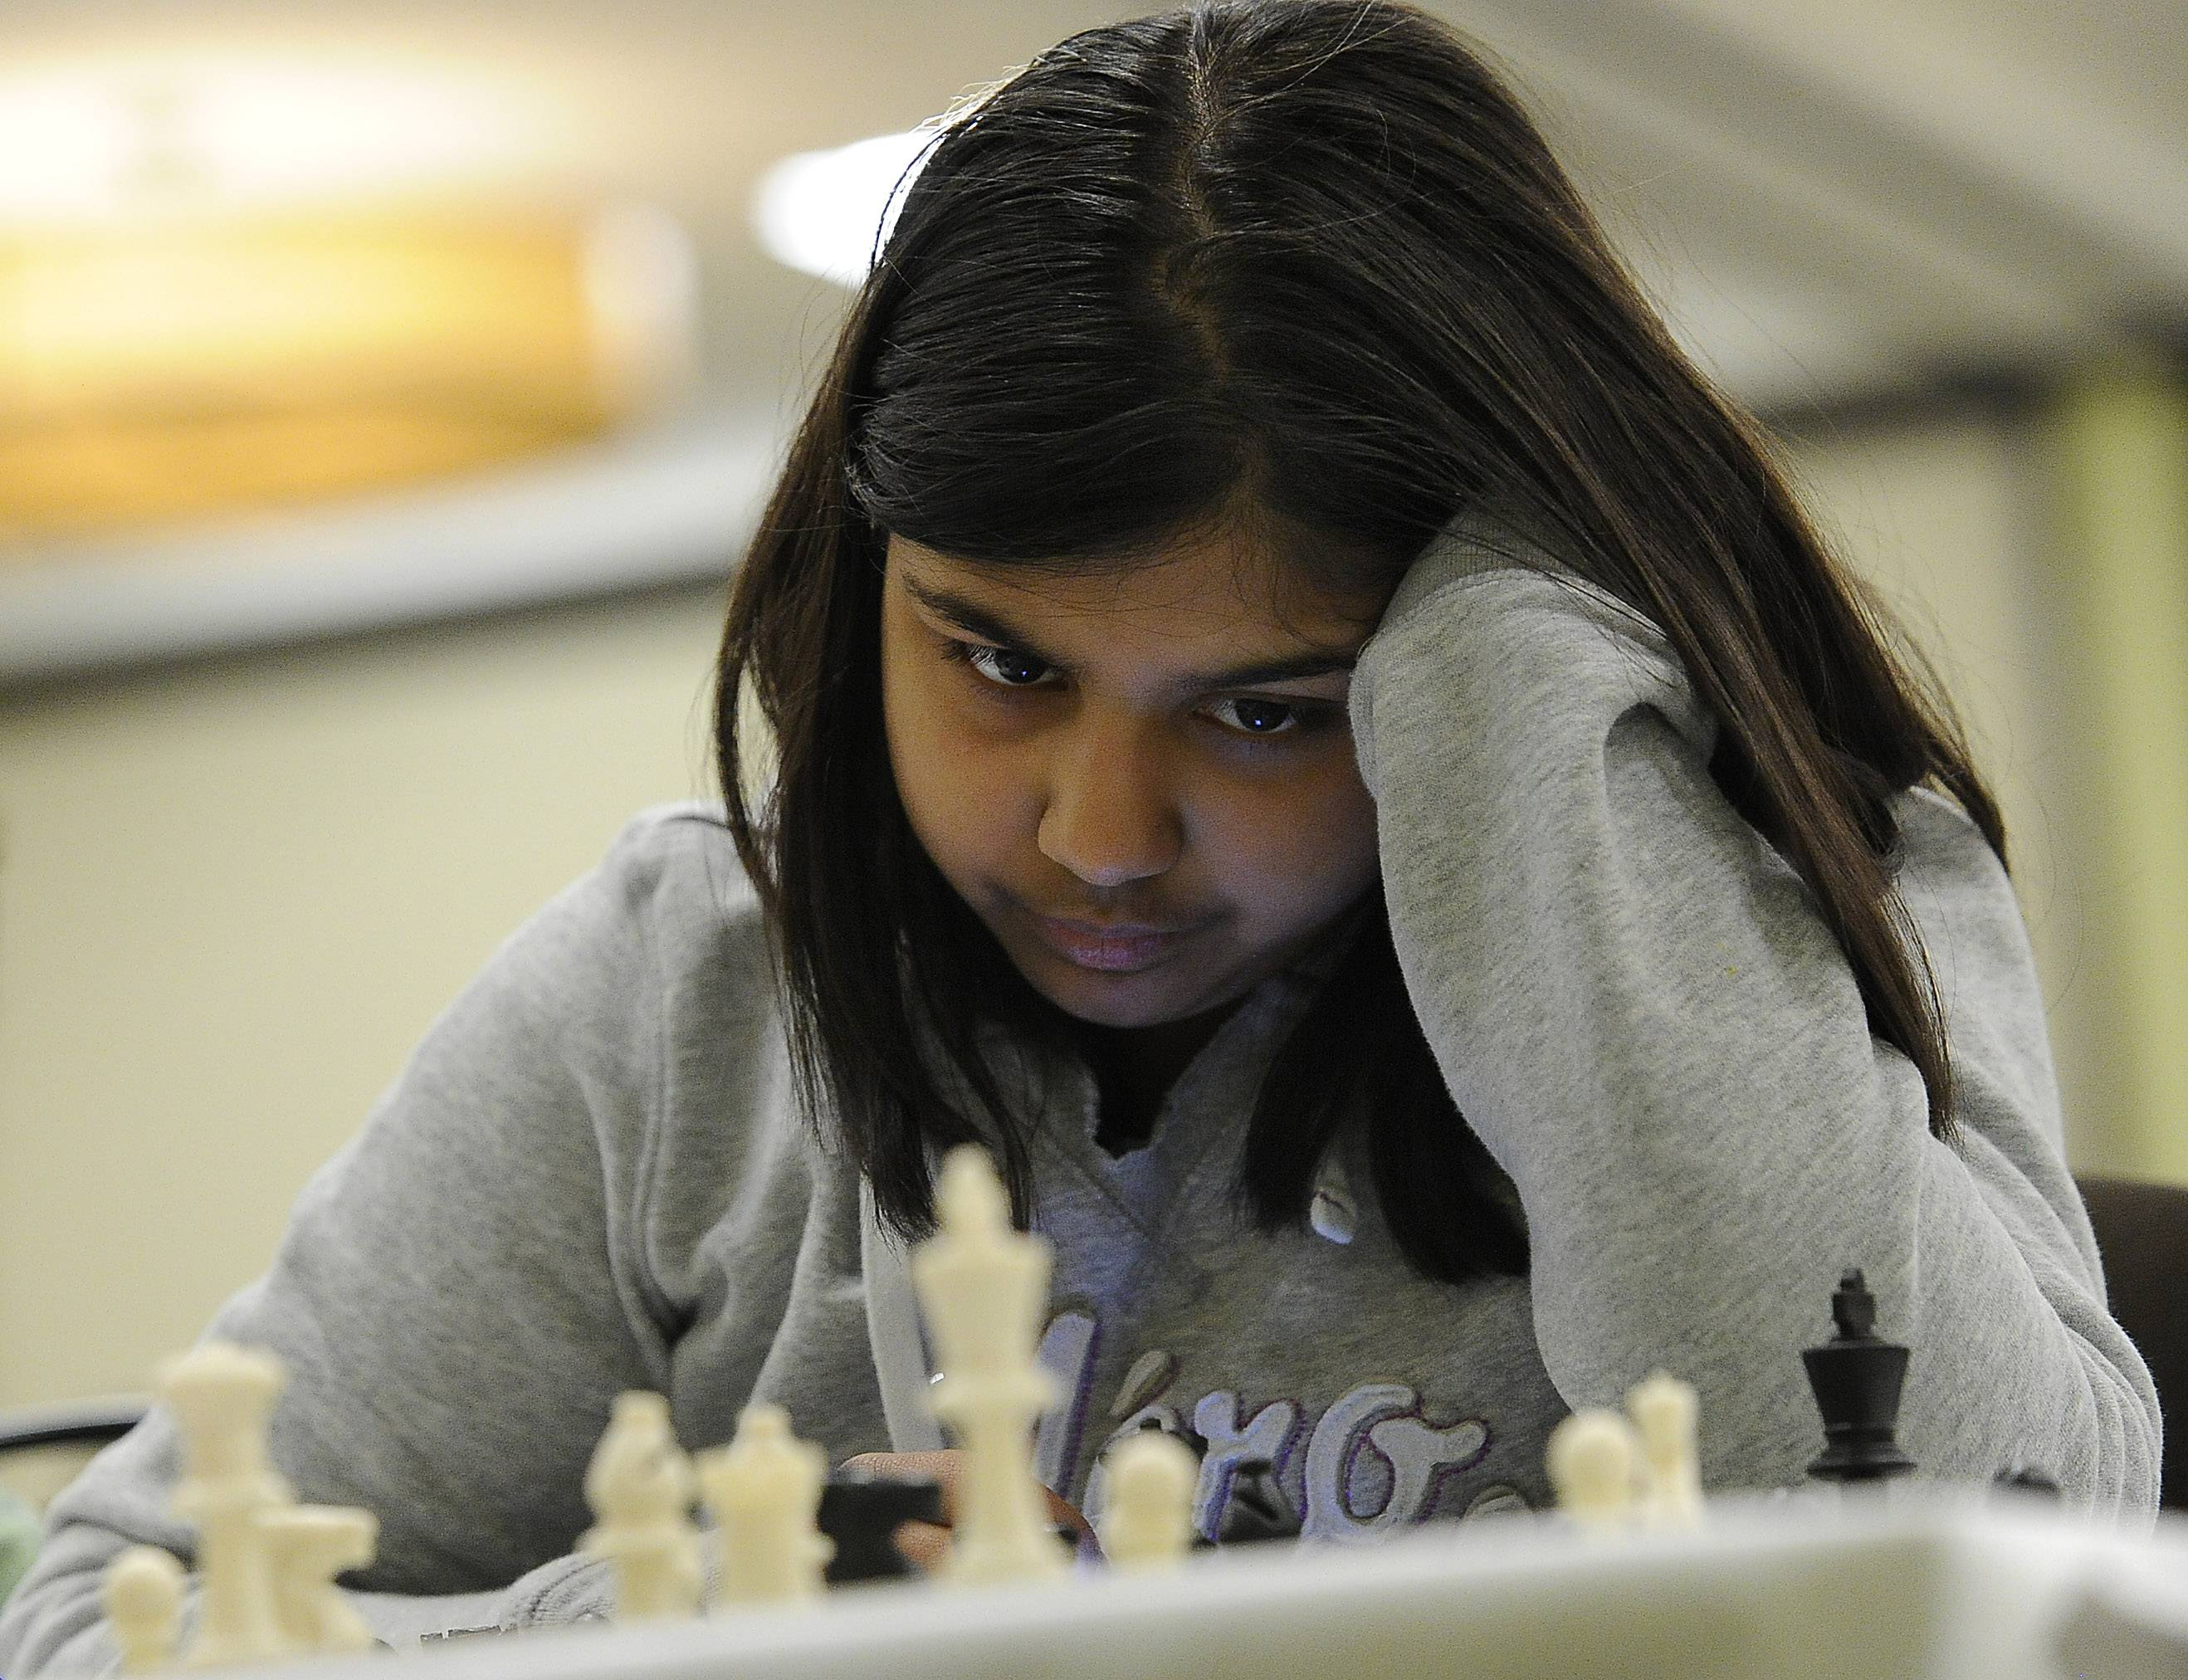 Shreya Mangalam of South Barrington studies the chessboard and moves of her opponent, Matthew Li, among the thousand or so kids that competed last month at the Illinois K-8 Chess Championships in Schaumburg.